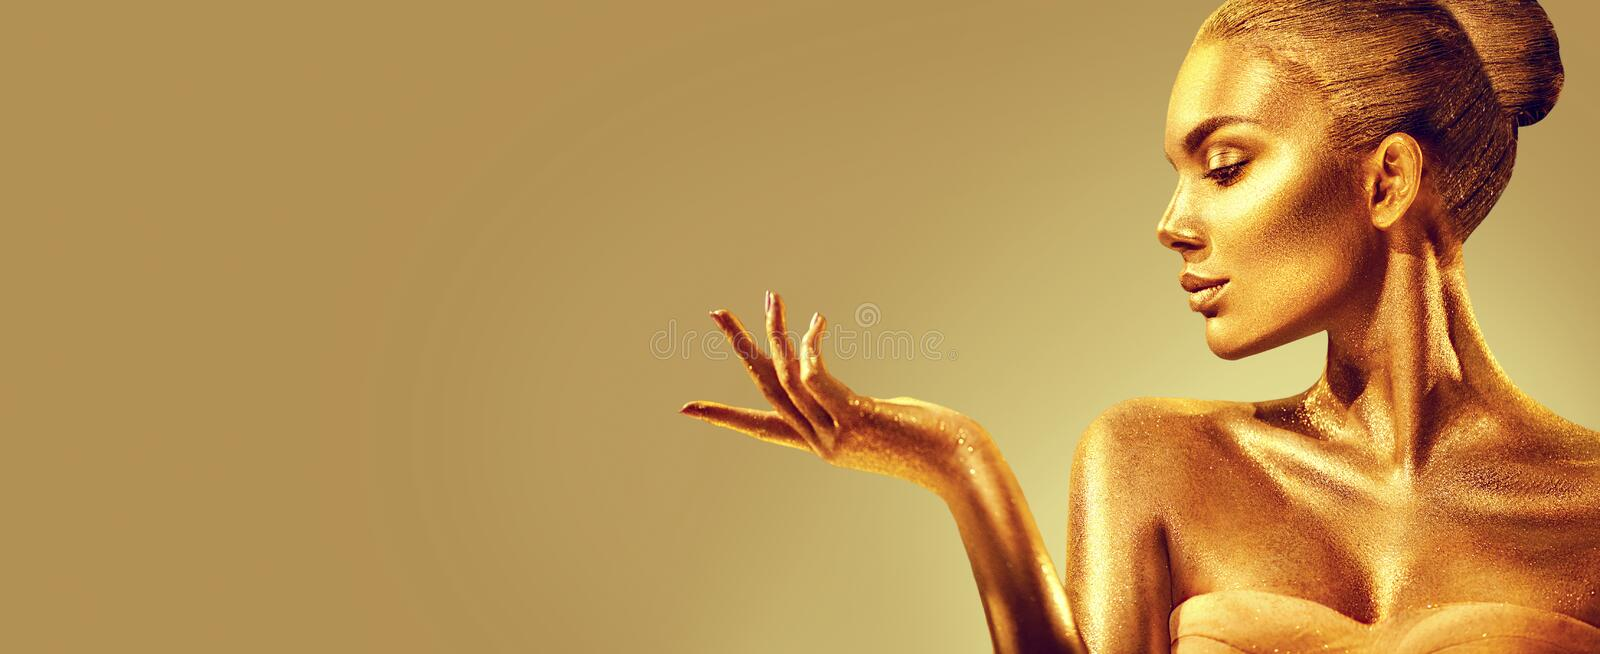 Golden woman. Beauty fashion model girl with golden skin, makeup, hair and jewellery on gold background. Fashion art portrait stock images